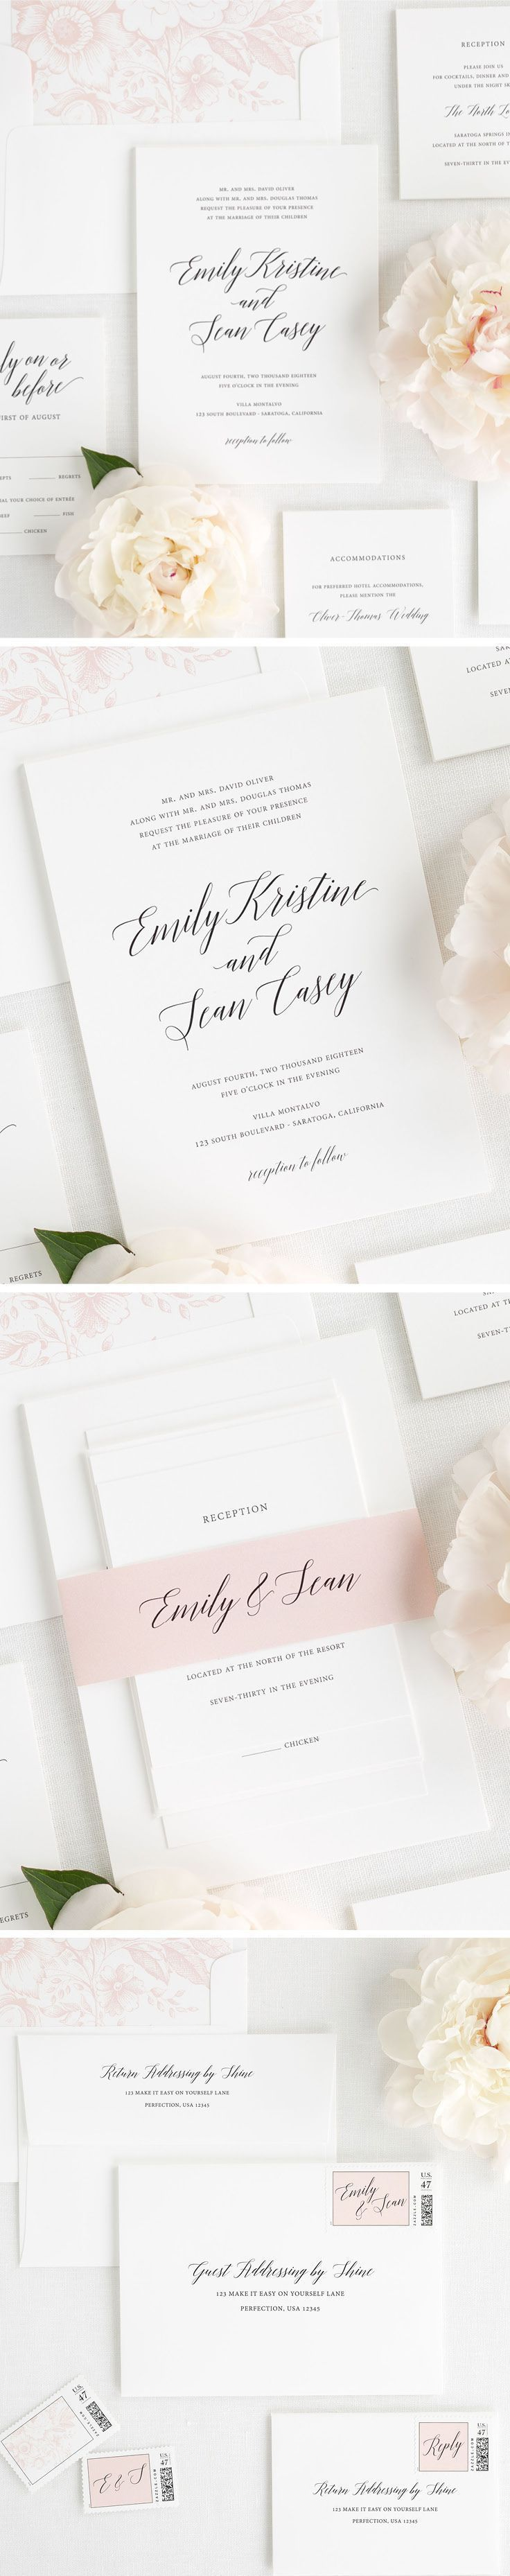 17 best ideas about classic wedding invitations on pinterest, Wedding invitations